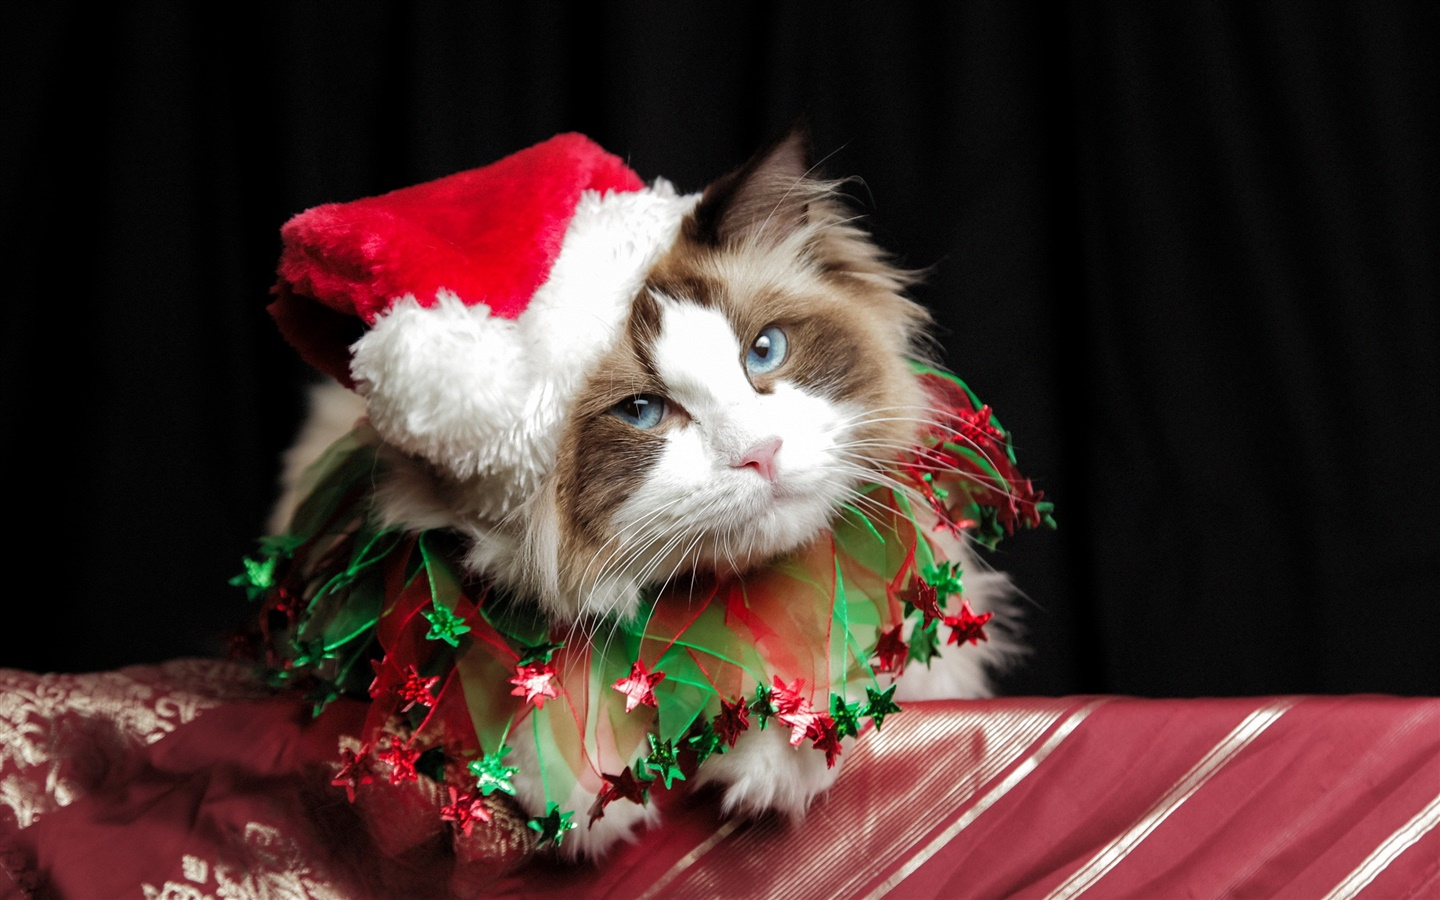 Christmas cat, hat 1440x900 wallpaper